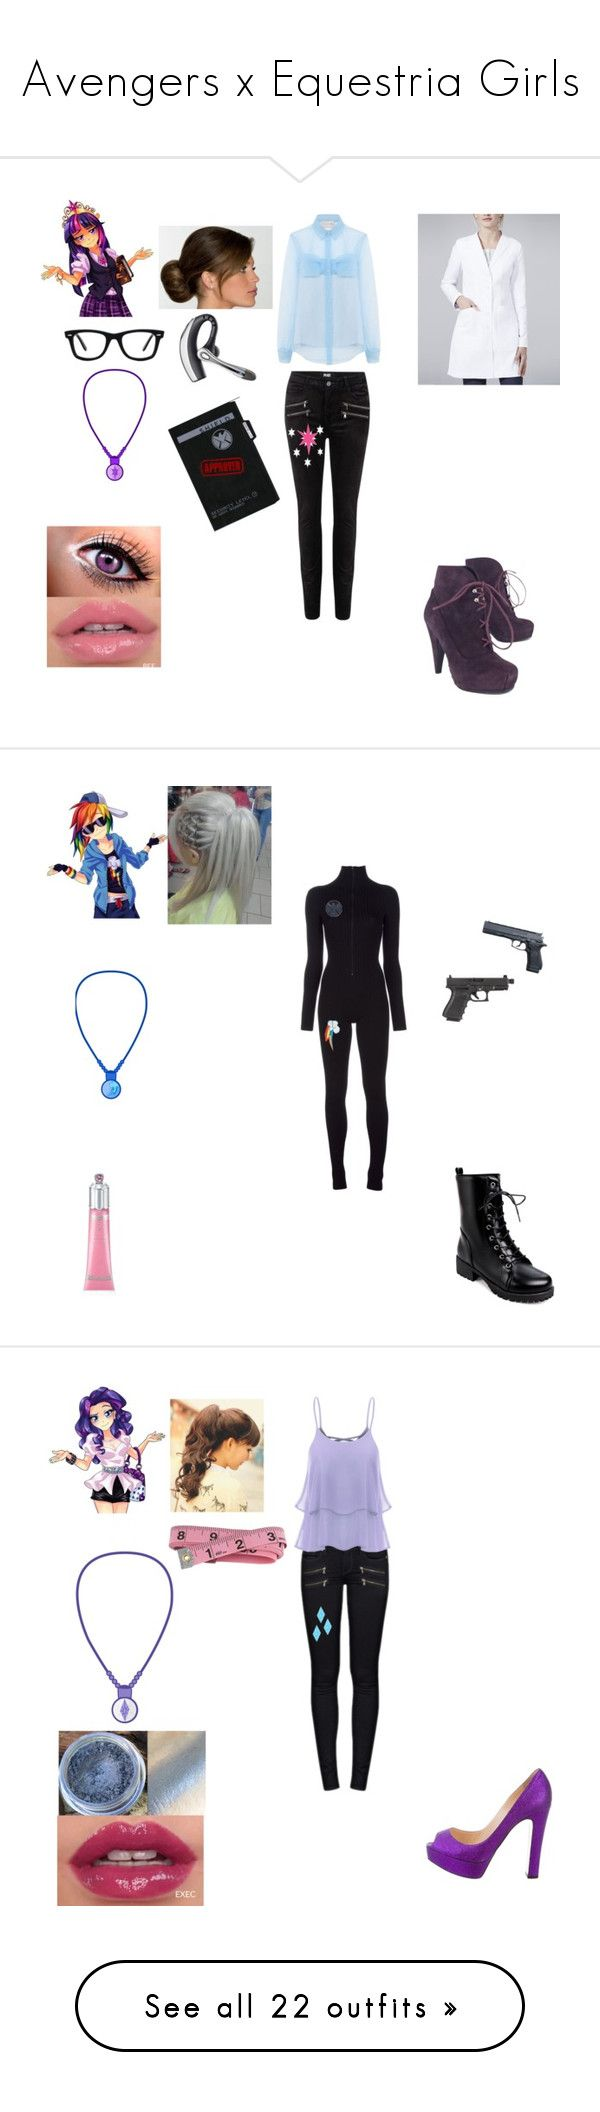 """Avengers x Equestria Girls"" by theglittergamer on Polyvore featuring Paige Denim, Ray-Ban, Christopher Kane, Proenza Schouler, Maison Margiela, My Little Pony, Beretta, Christian Louboutin, Prada and maurices"